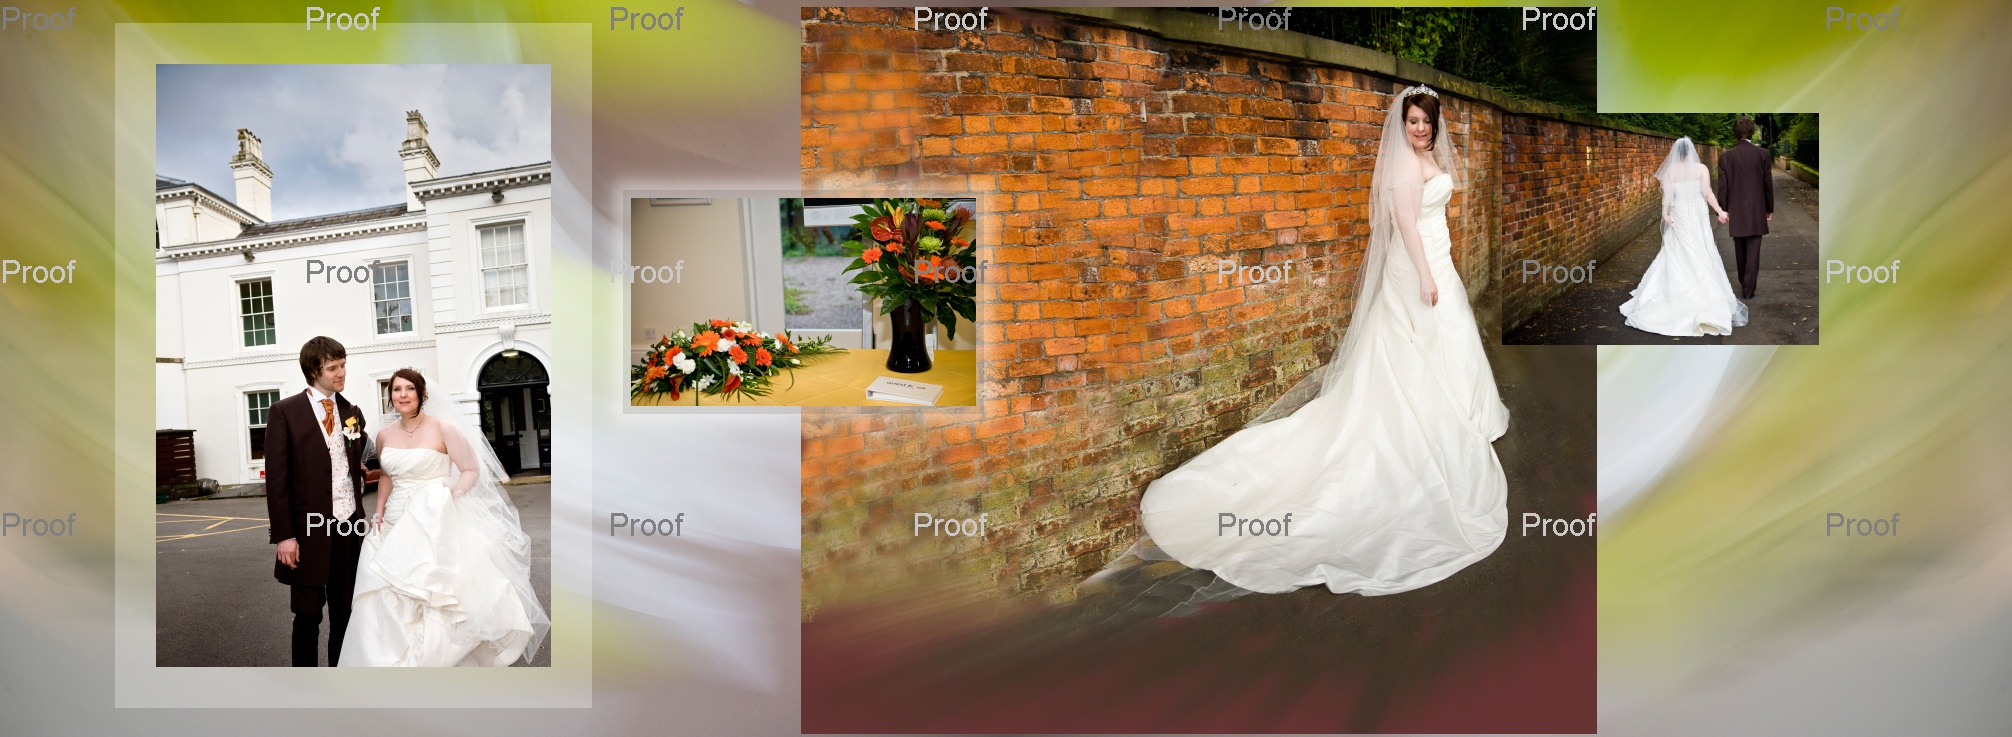 pages 74-75 wedding storybook dreamy romance in grounds of Chancellors Hotel & Conference Centre